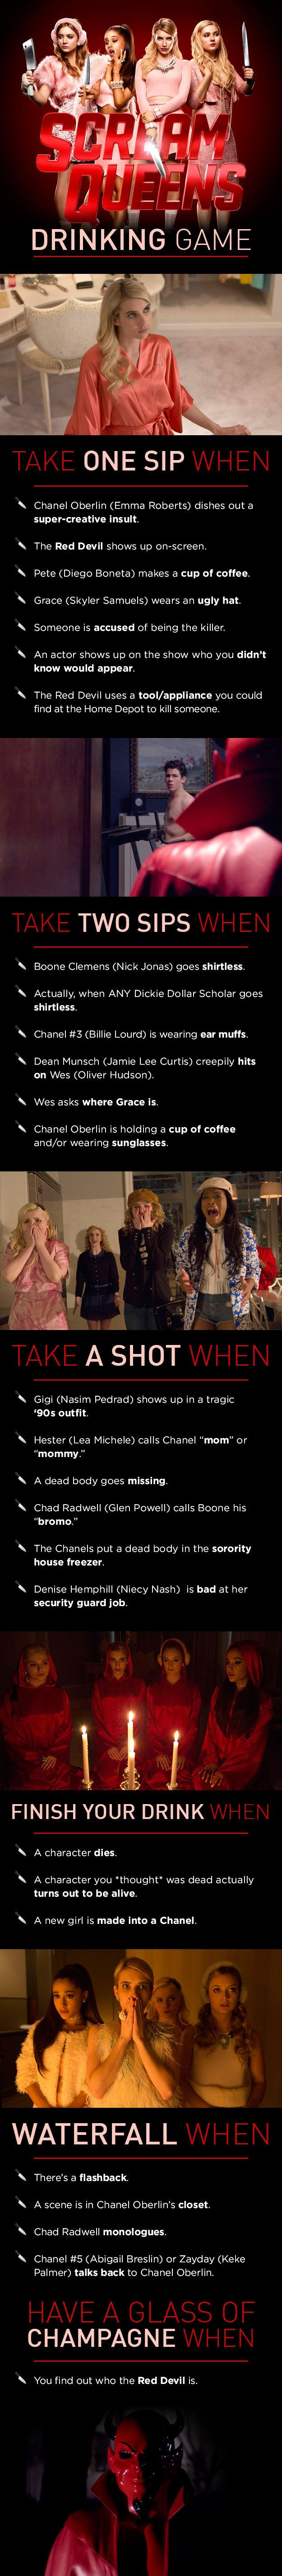 "This Is The Scary Good ""Scream Queens"" Drinking Game You Need 